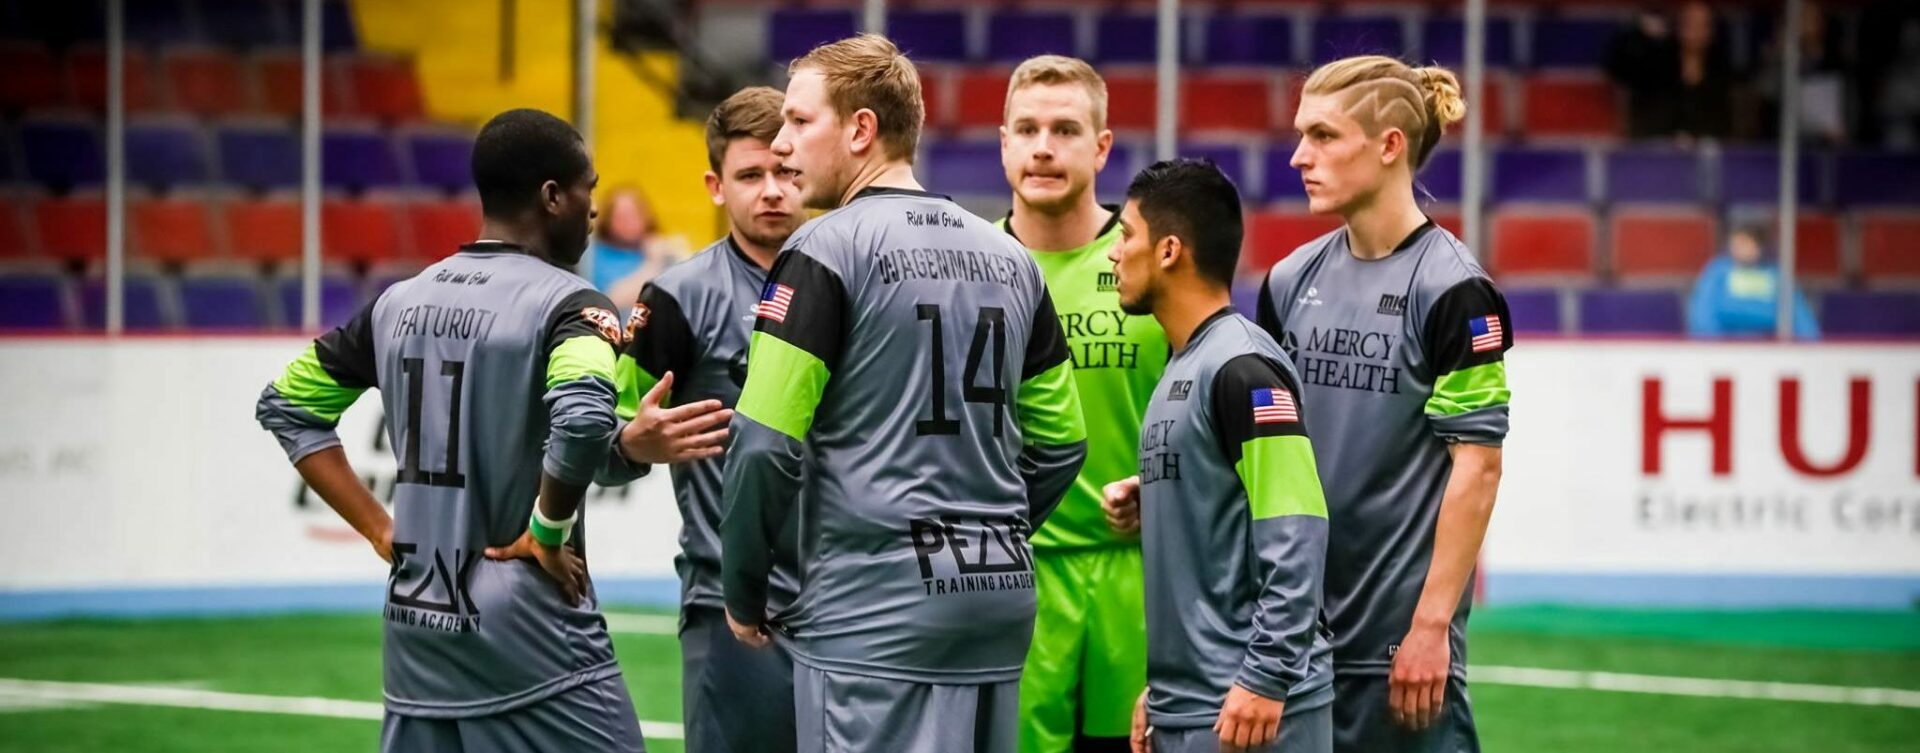 The Muskegon Risers indoor team returns for a home game against Fort Wayne on Saturday to kick off a shortened season